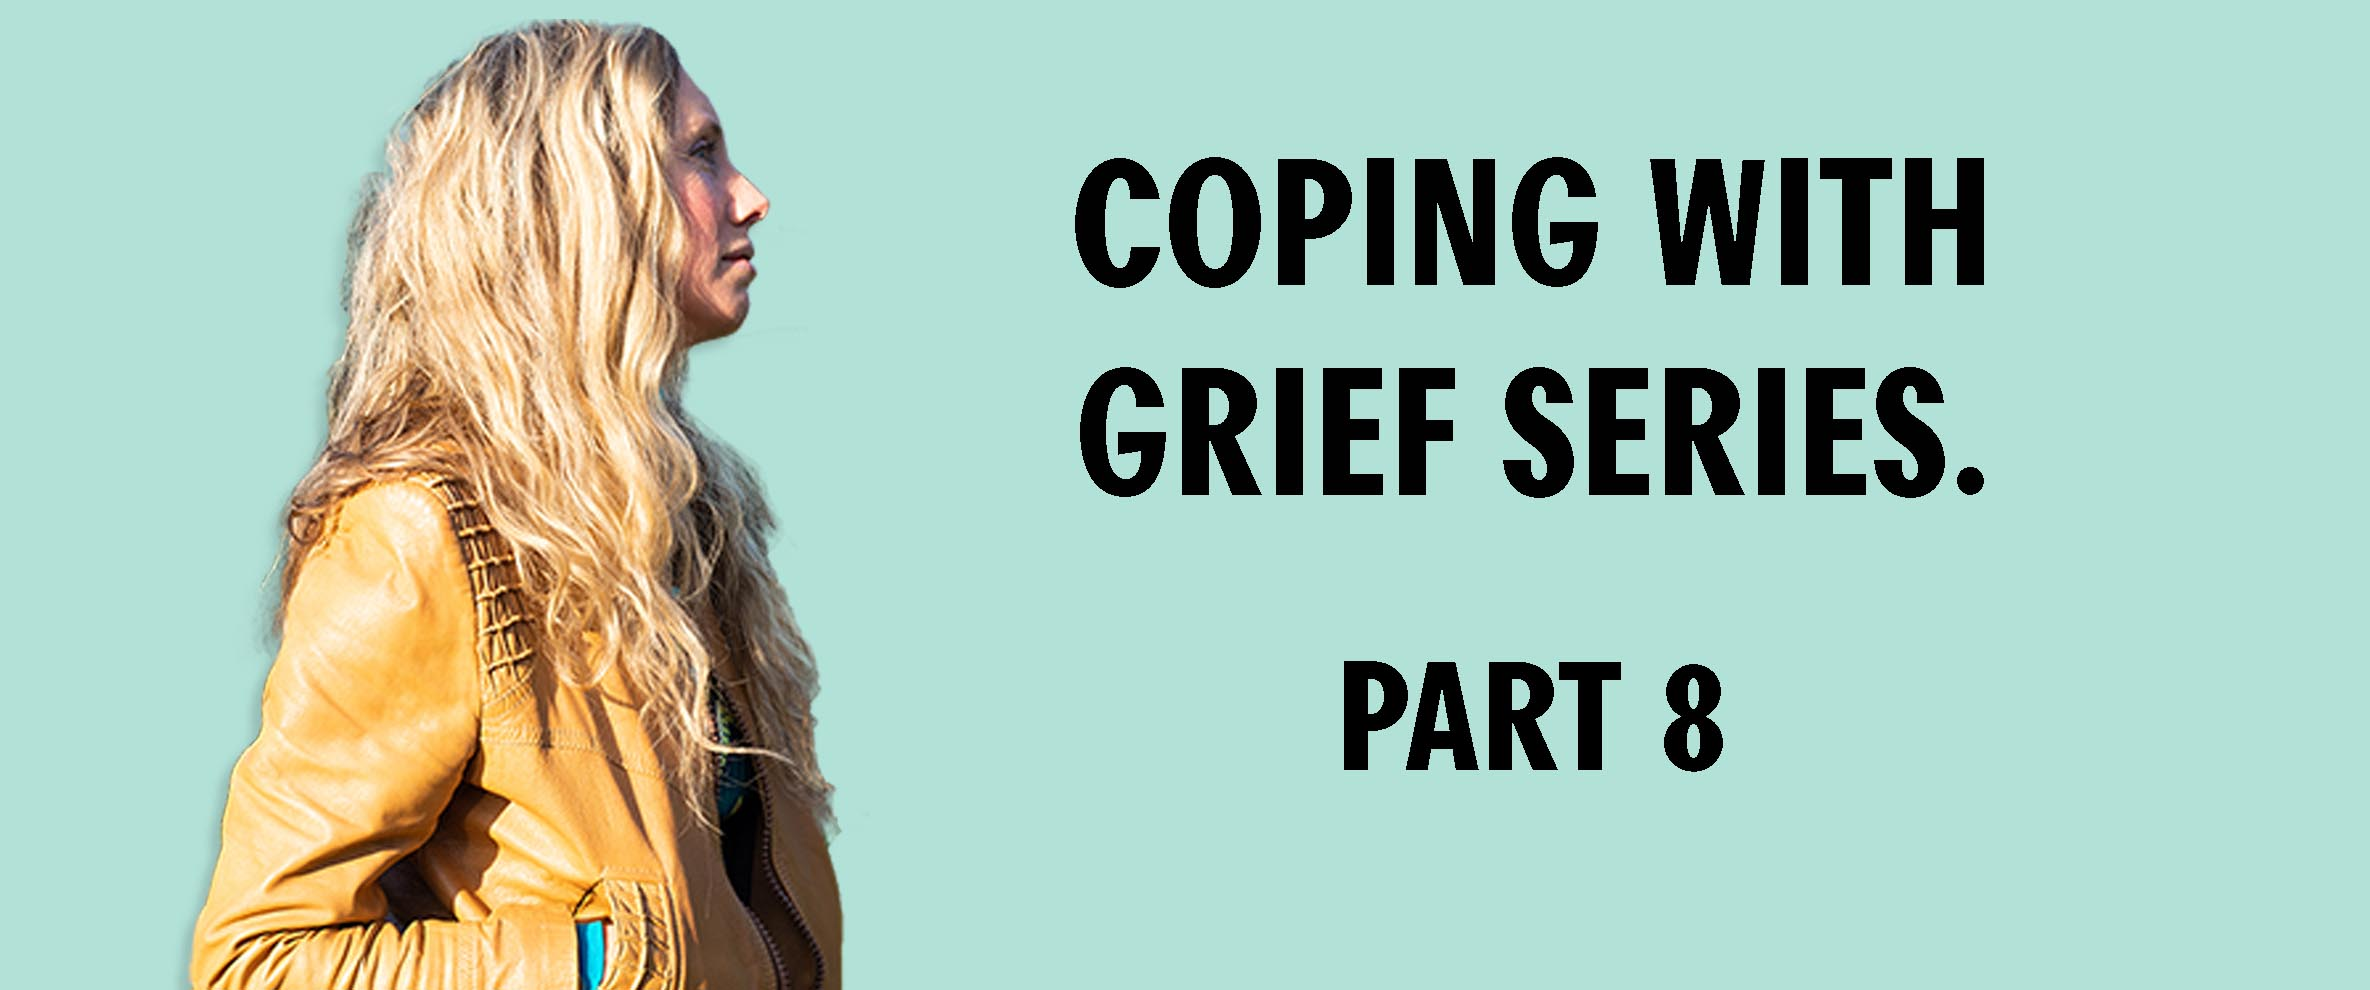 Claire Hoffman presents her Coping With Grief Series Part 8.